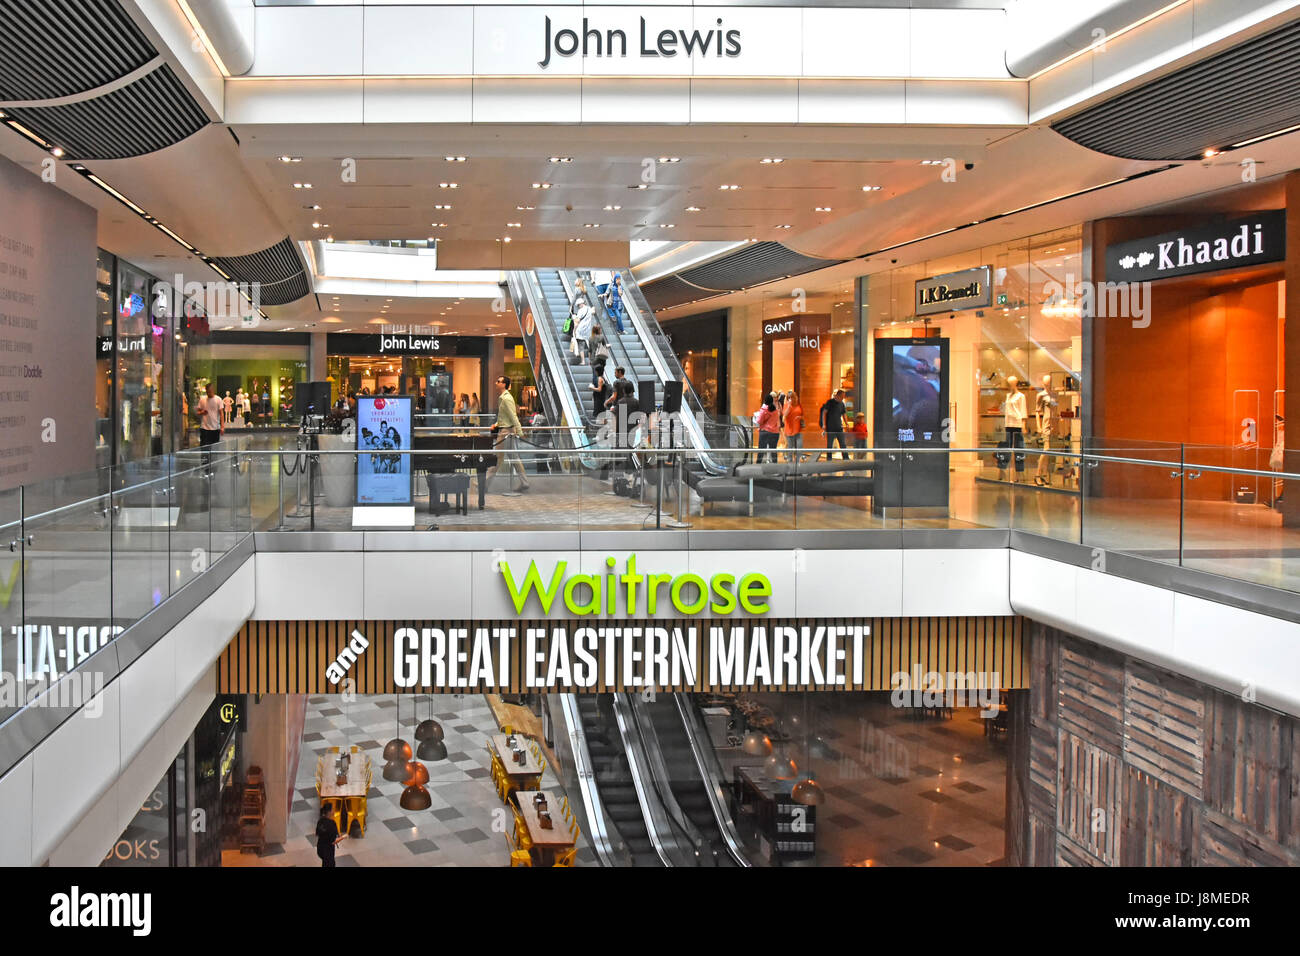 sign at the escalator photos sign at the escalator images alamy. Black Bedroom Furniture Sets. Home Design Ideas